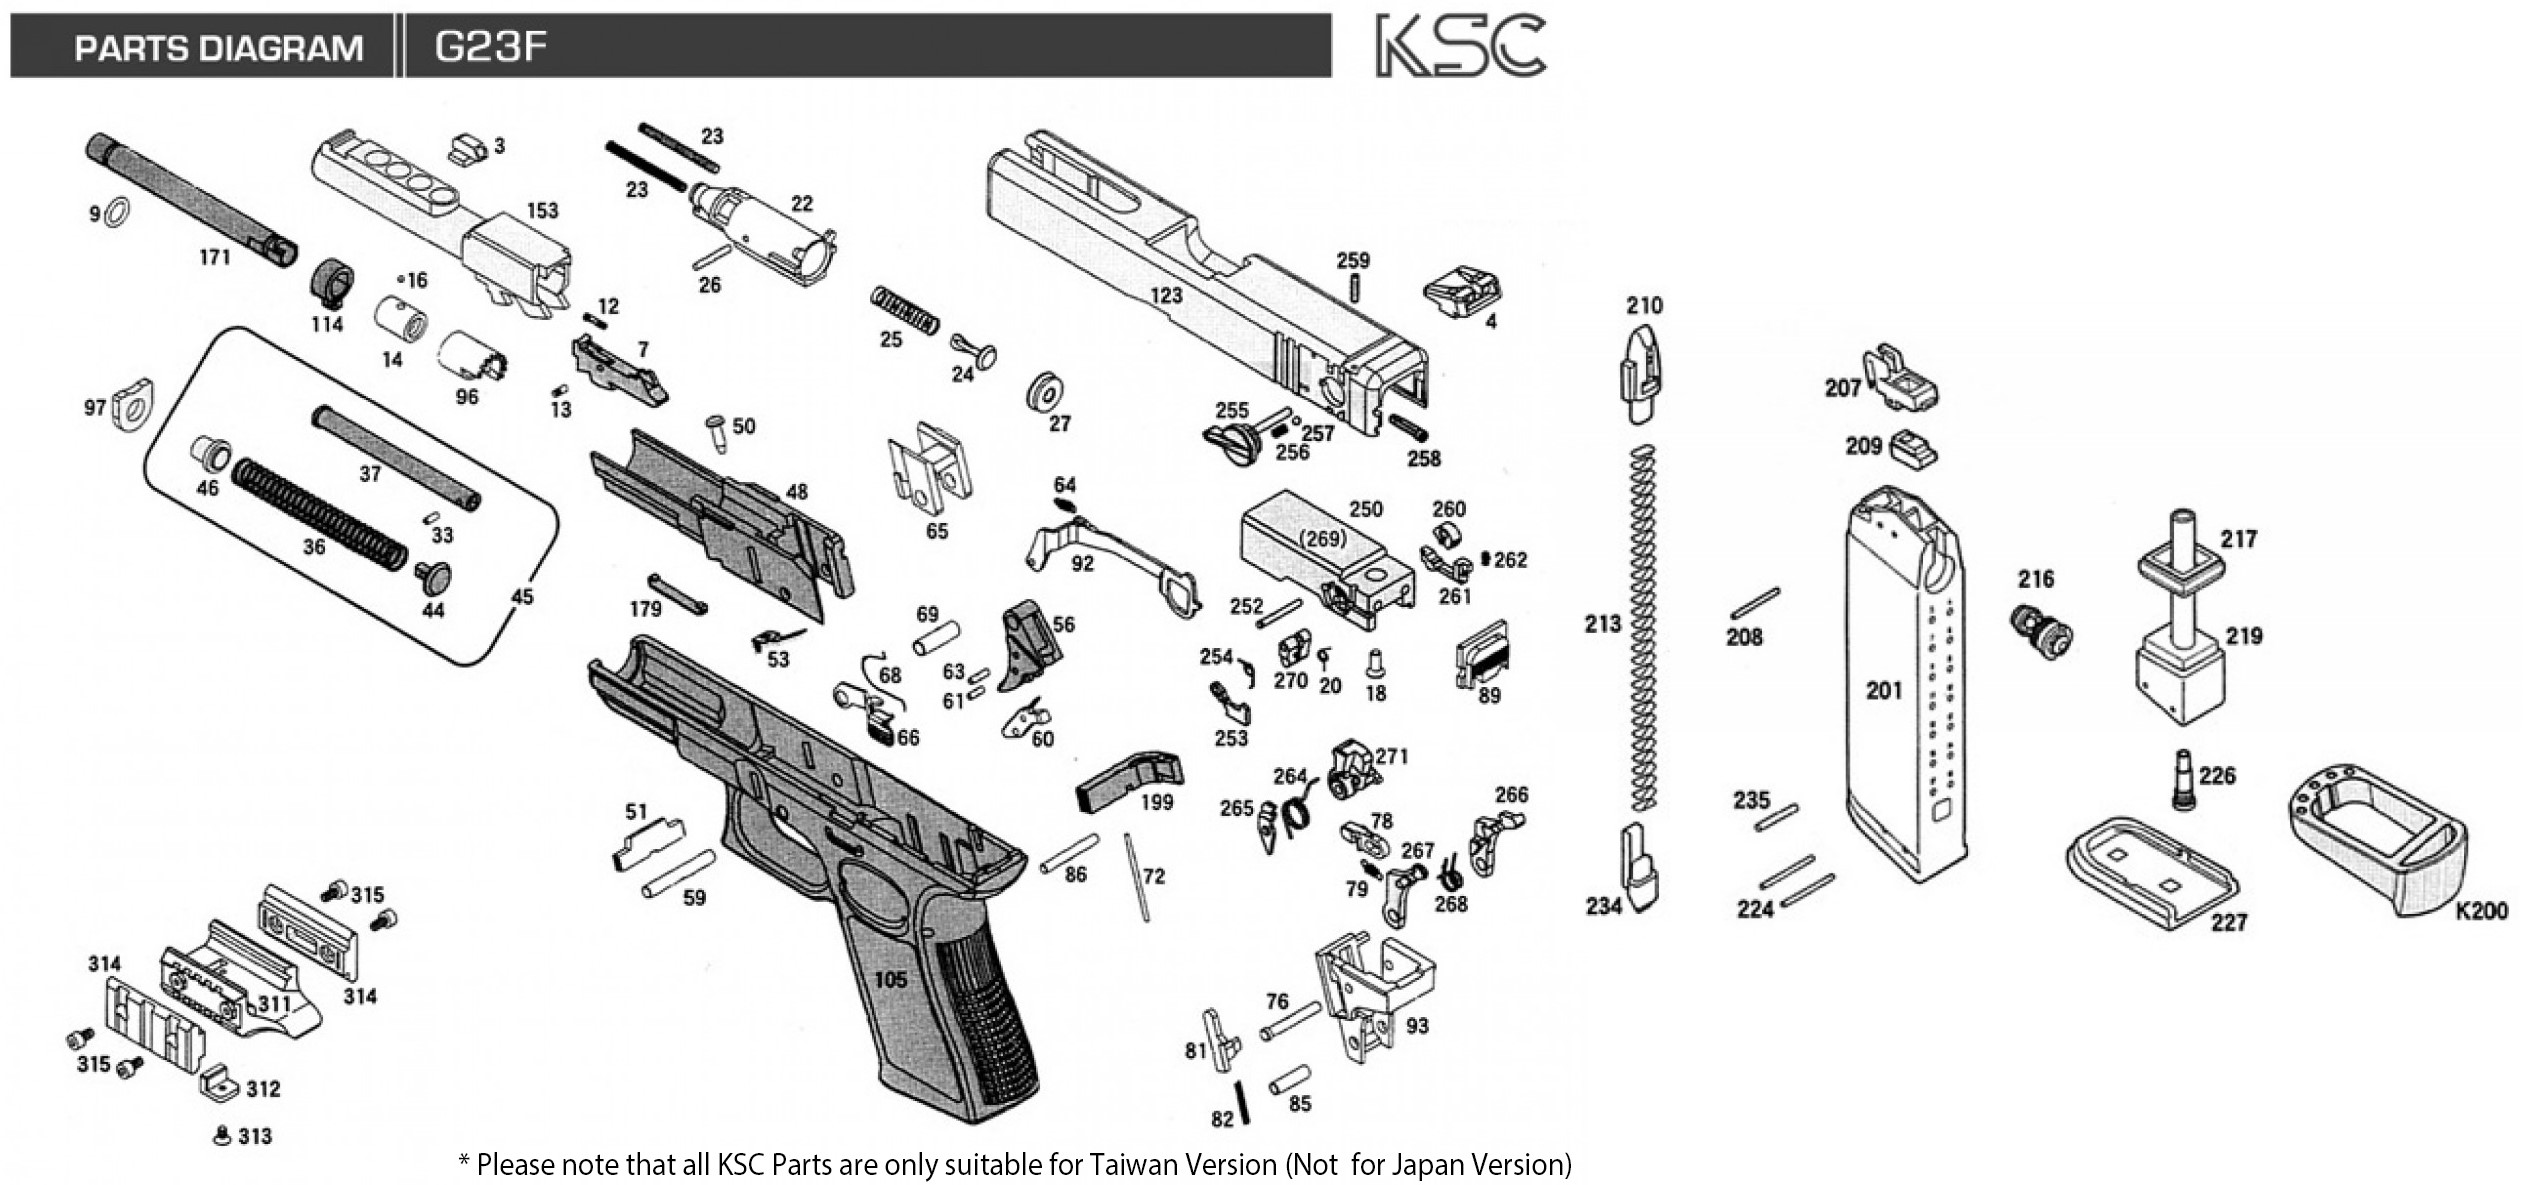 Exploded Diagram Ksc Glock 23f Ksc Part Original